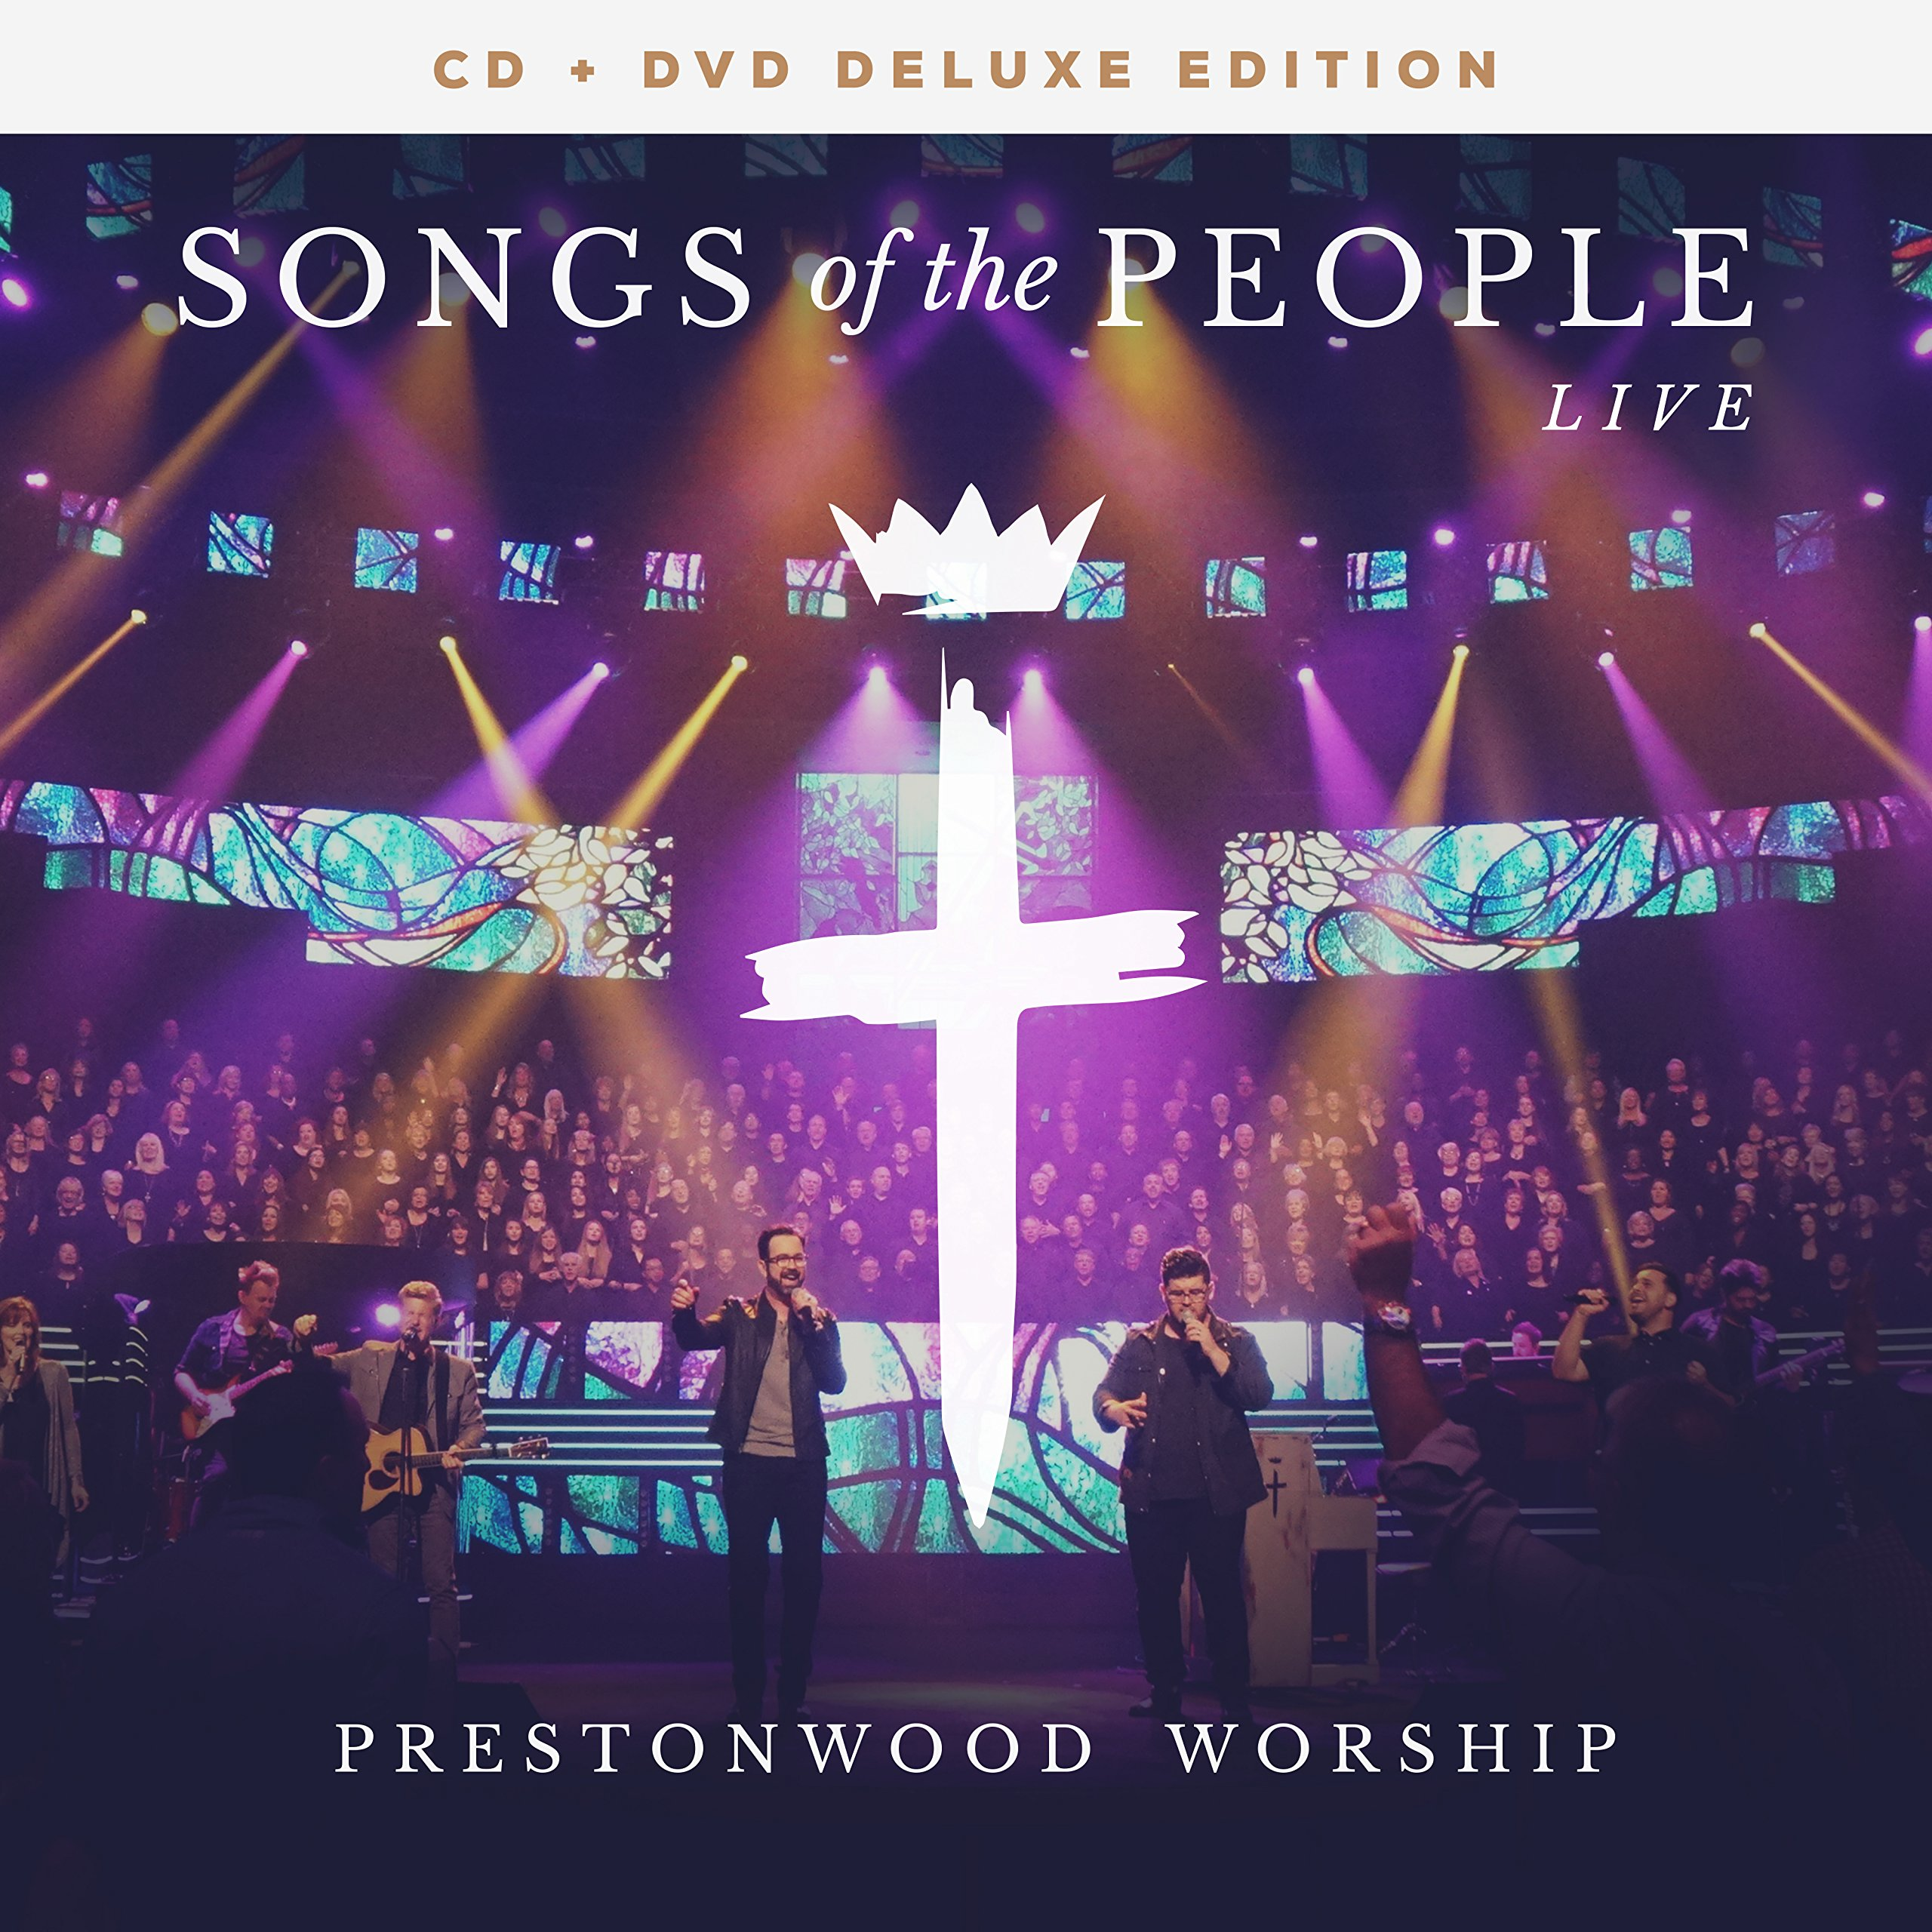 Songs of the People - Live (CD/DVD Deluxe Edition)